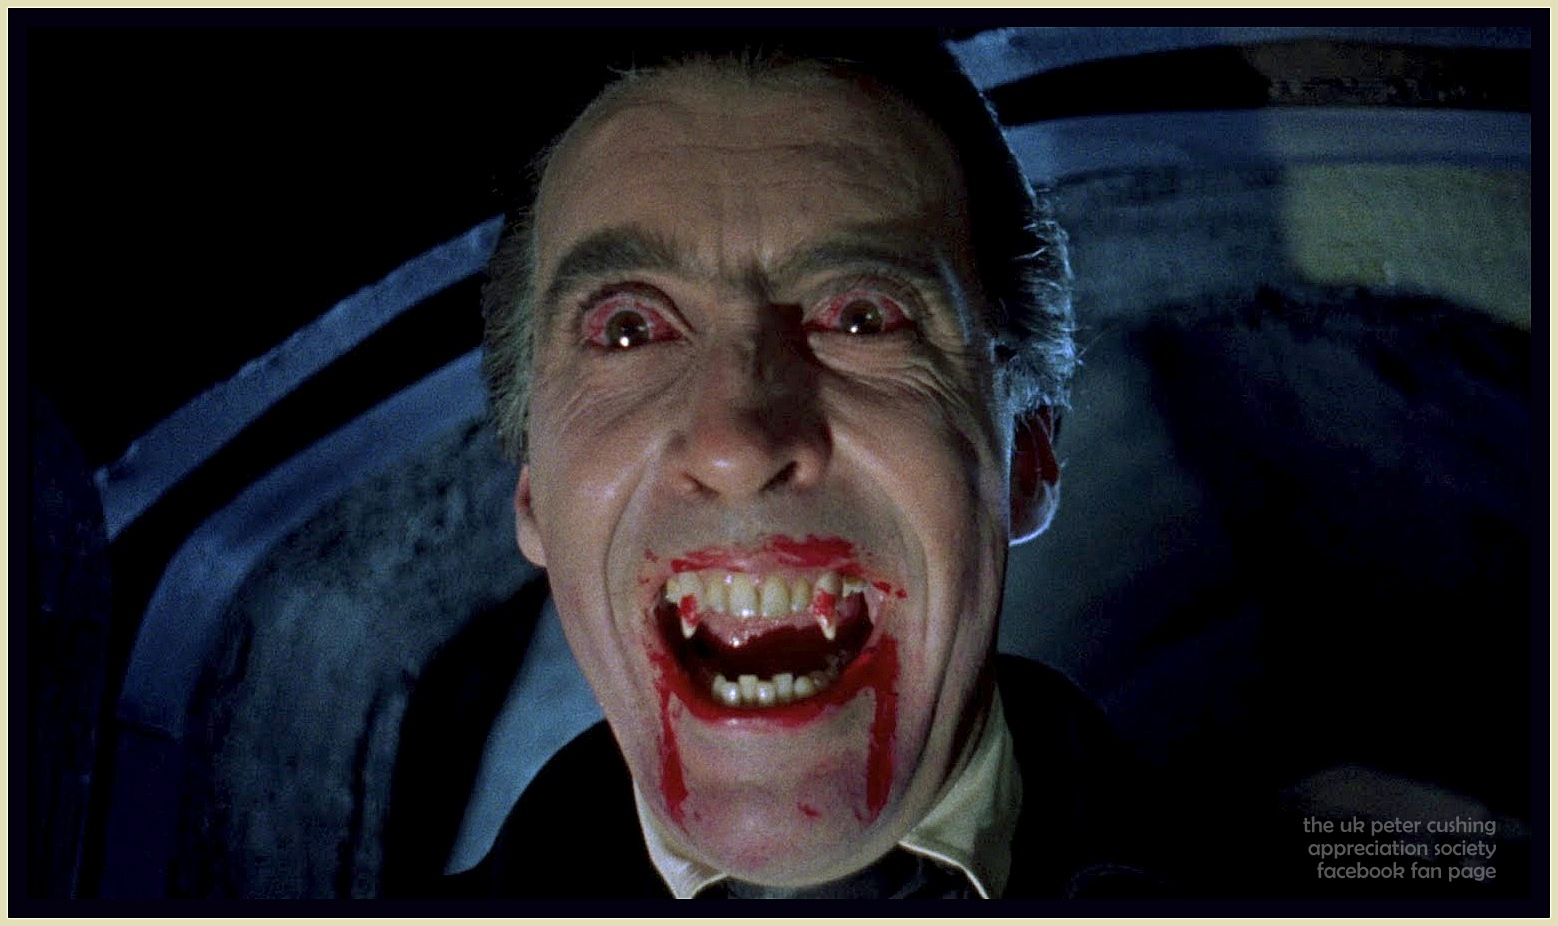 Dracula [Christopher Lee] 1